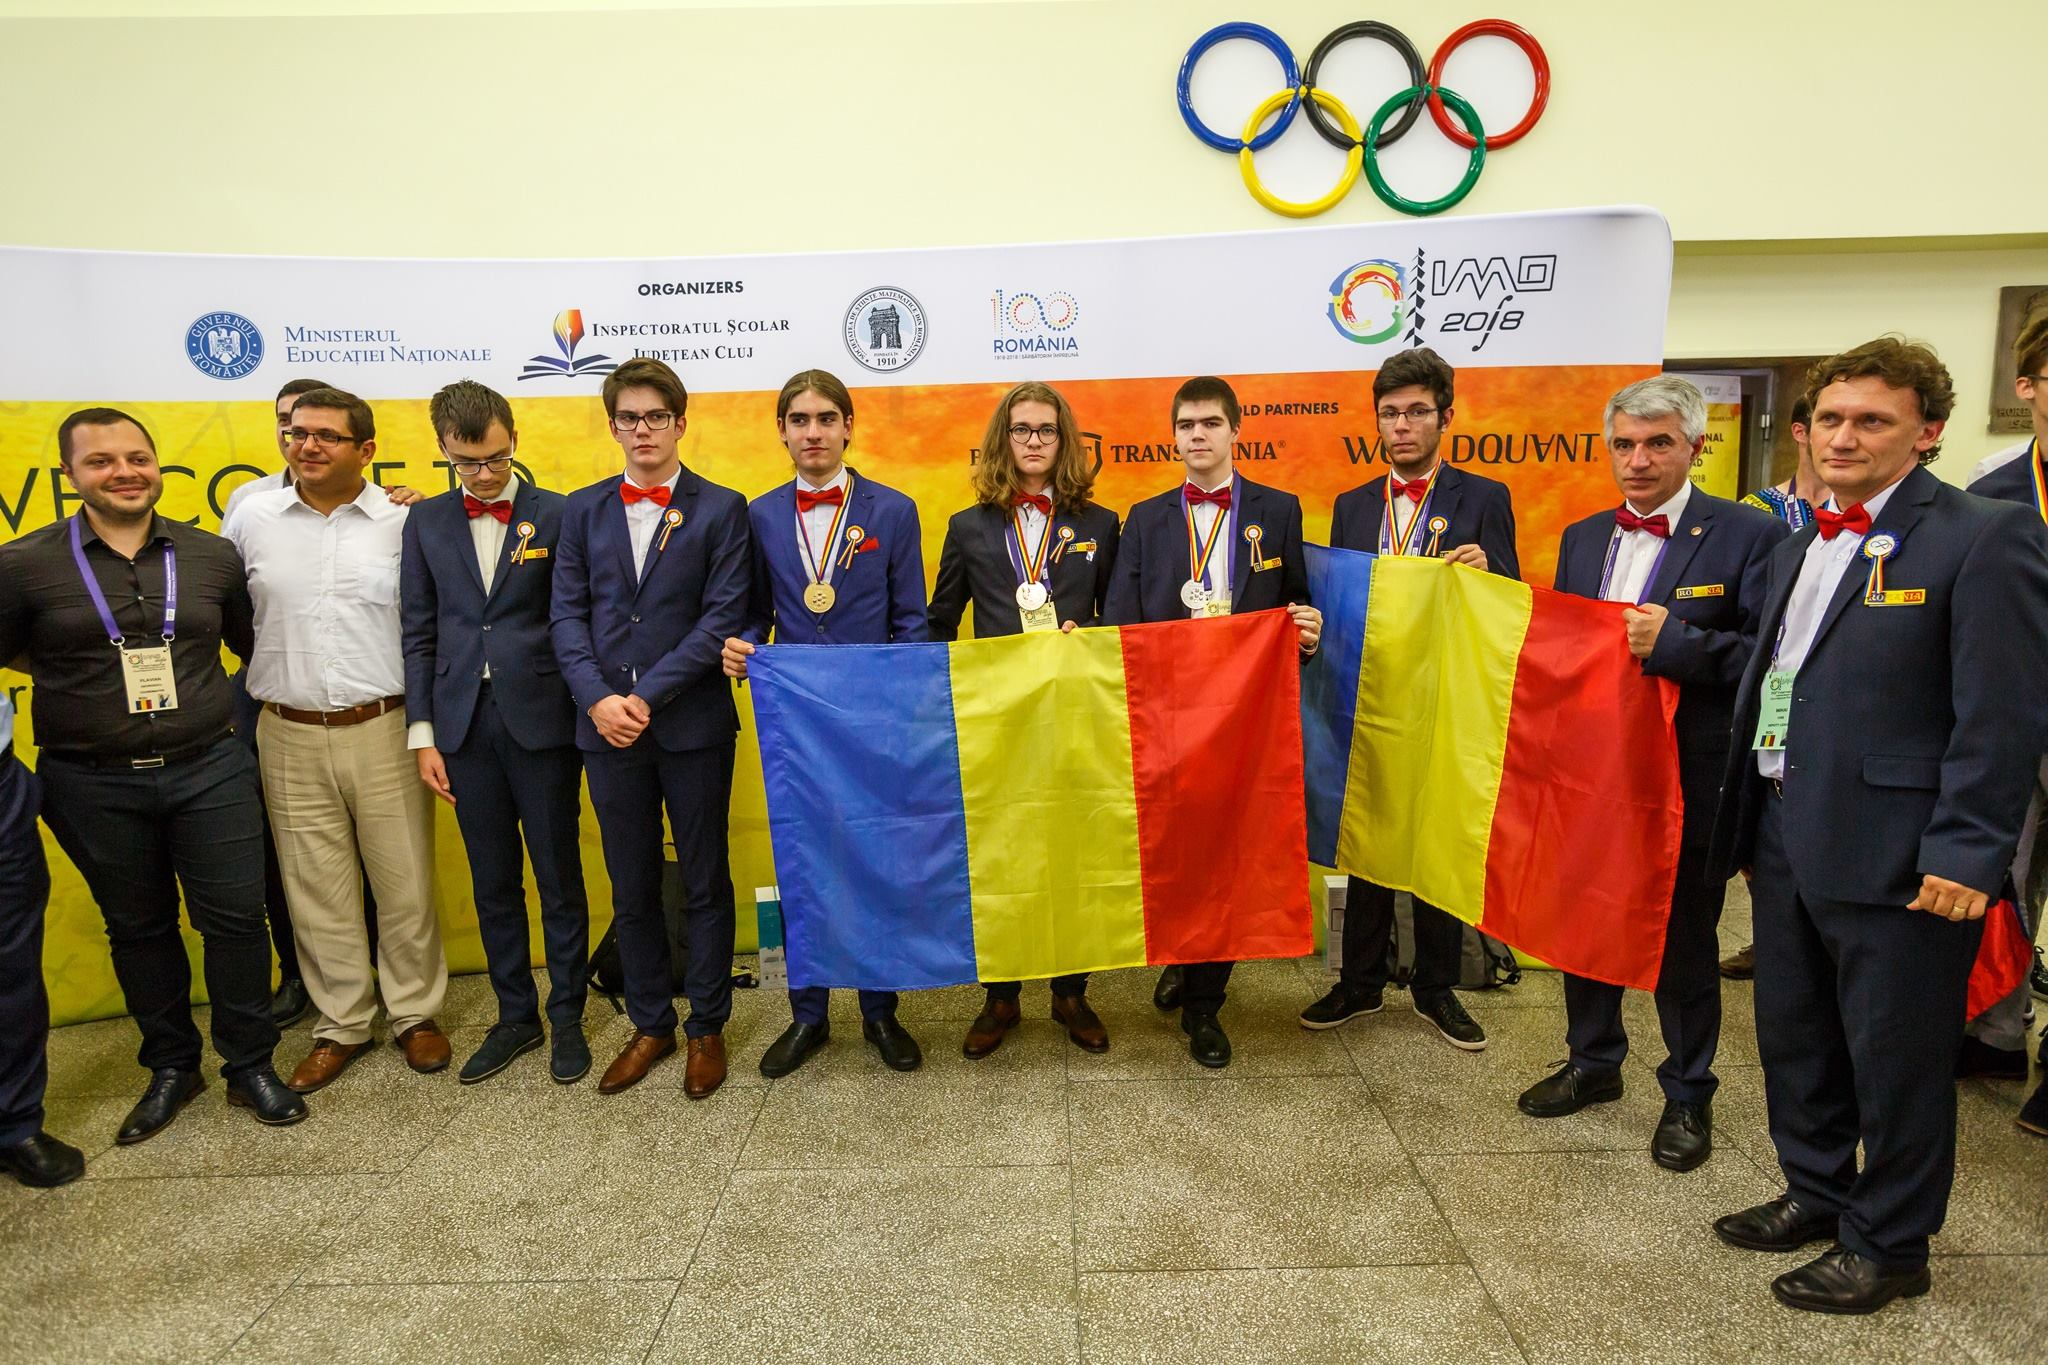 Worst result for Romania at the International Math Olympiad